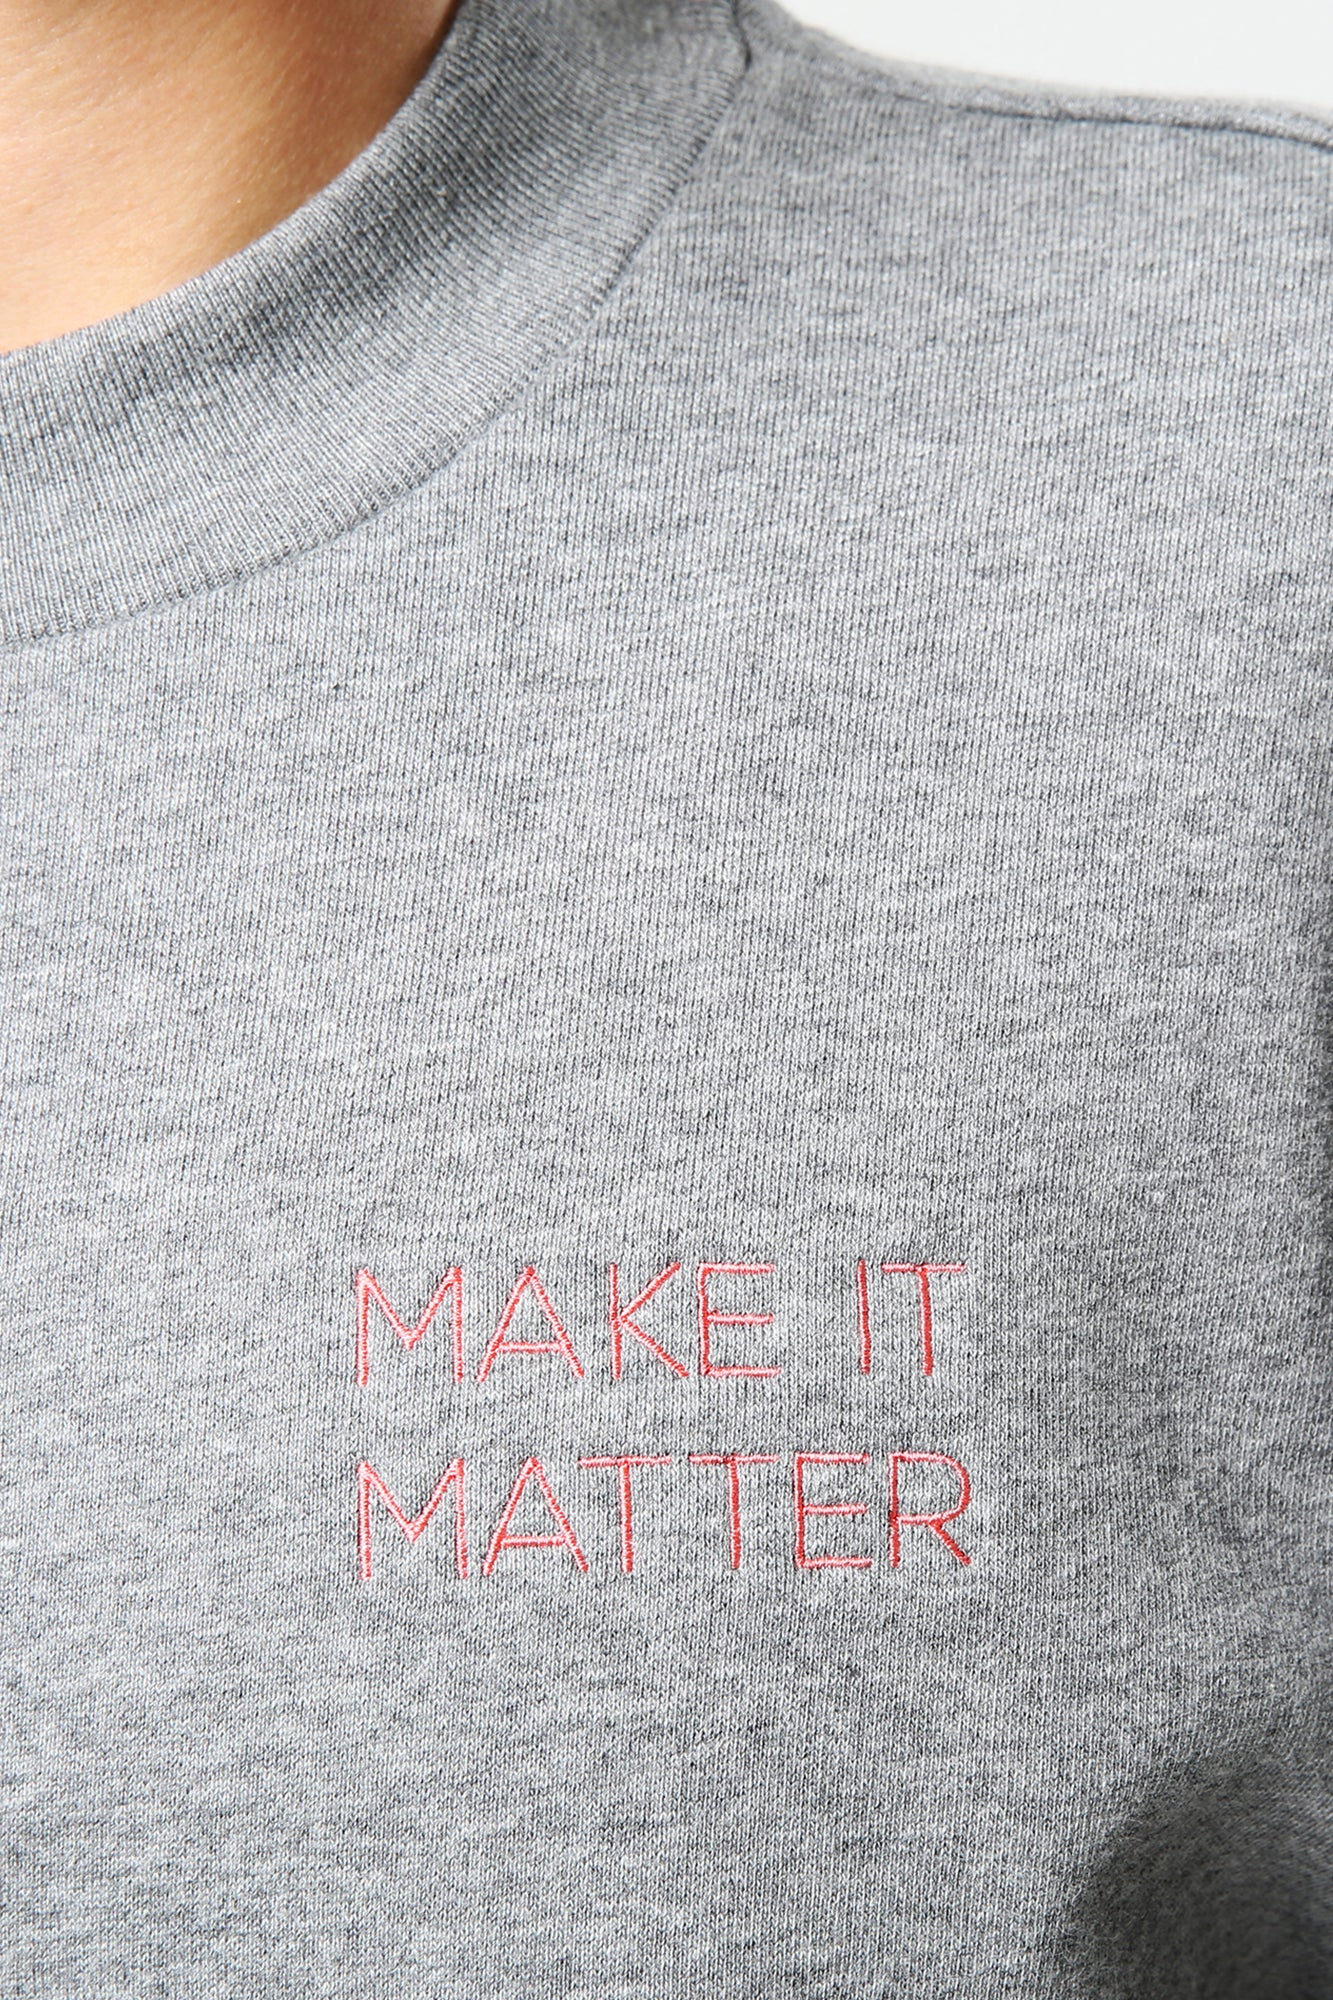 Make It Matter Sweater